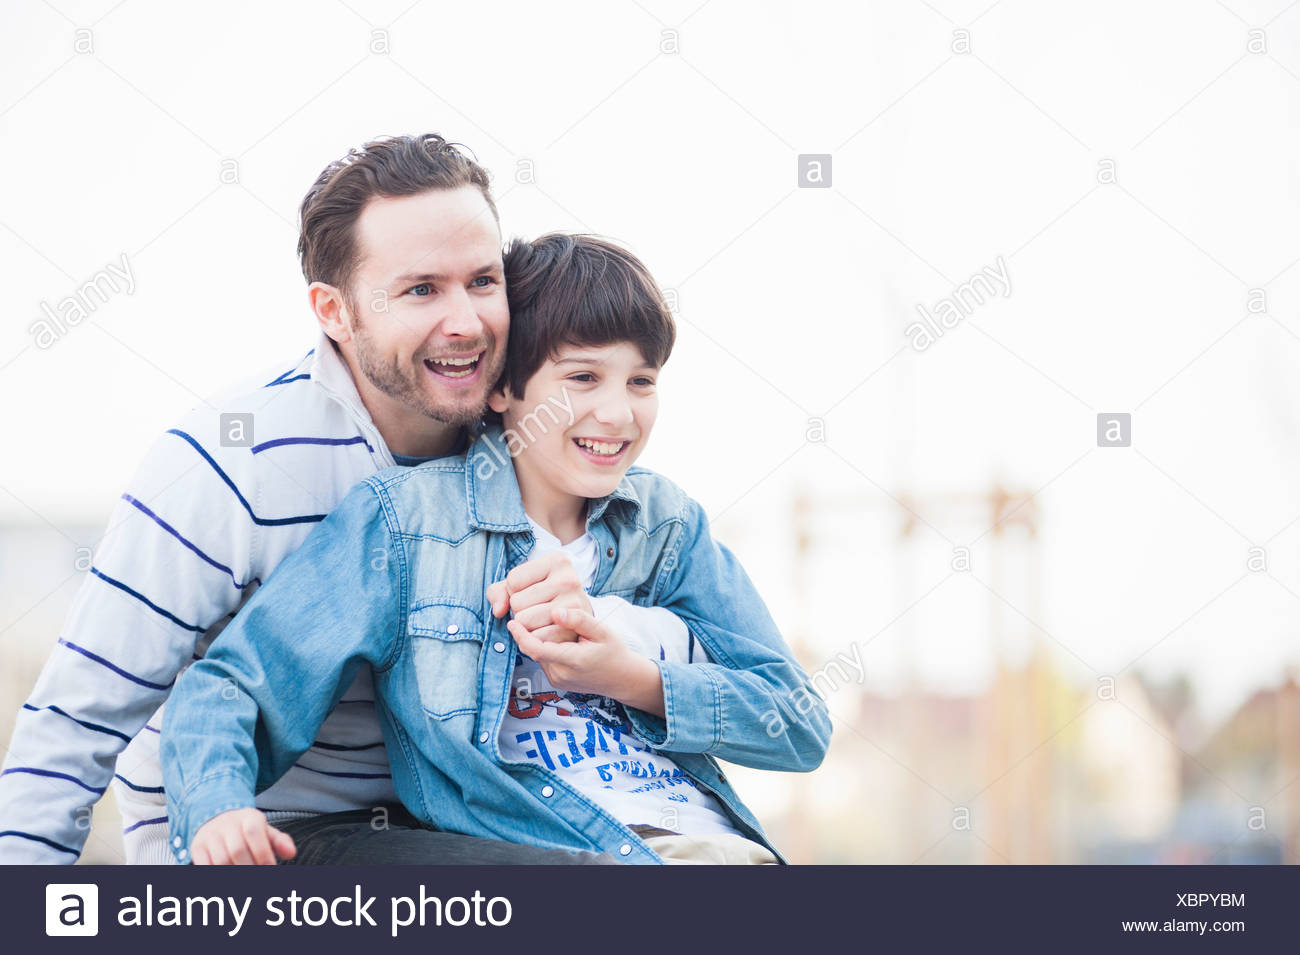 Father and son hugging - Stock Image